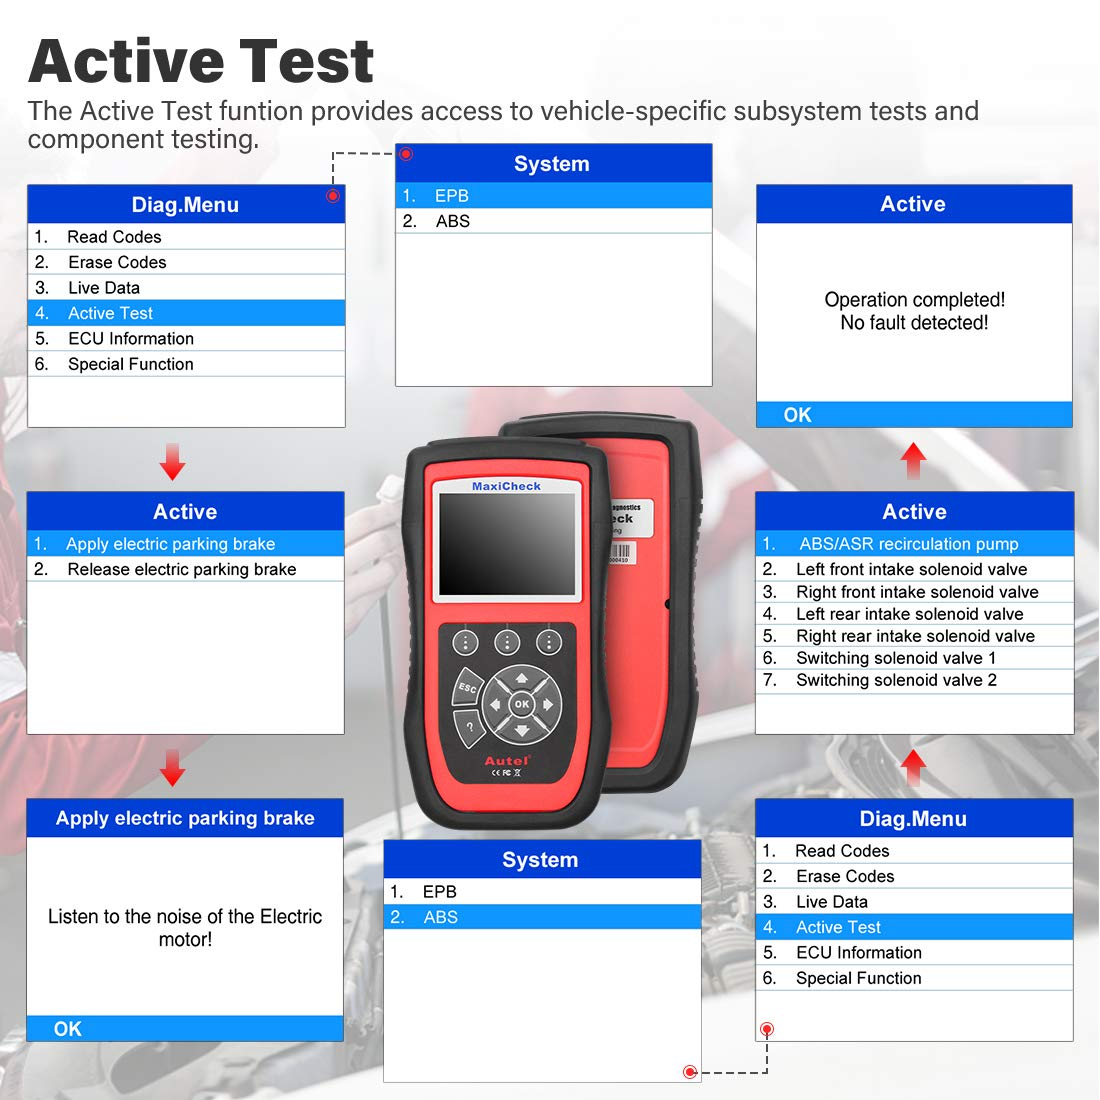 Autel MaxiCheck Pro OBD2 Scanner Automotive Diagnostic Scan Tool with ABS Auto Bleed, SRS Airbag, Oil Reset, SAS, EPB, BMS for Specific Vehicles 1996 to 2012 by Autel (Image #6)